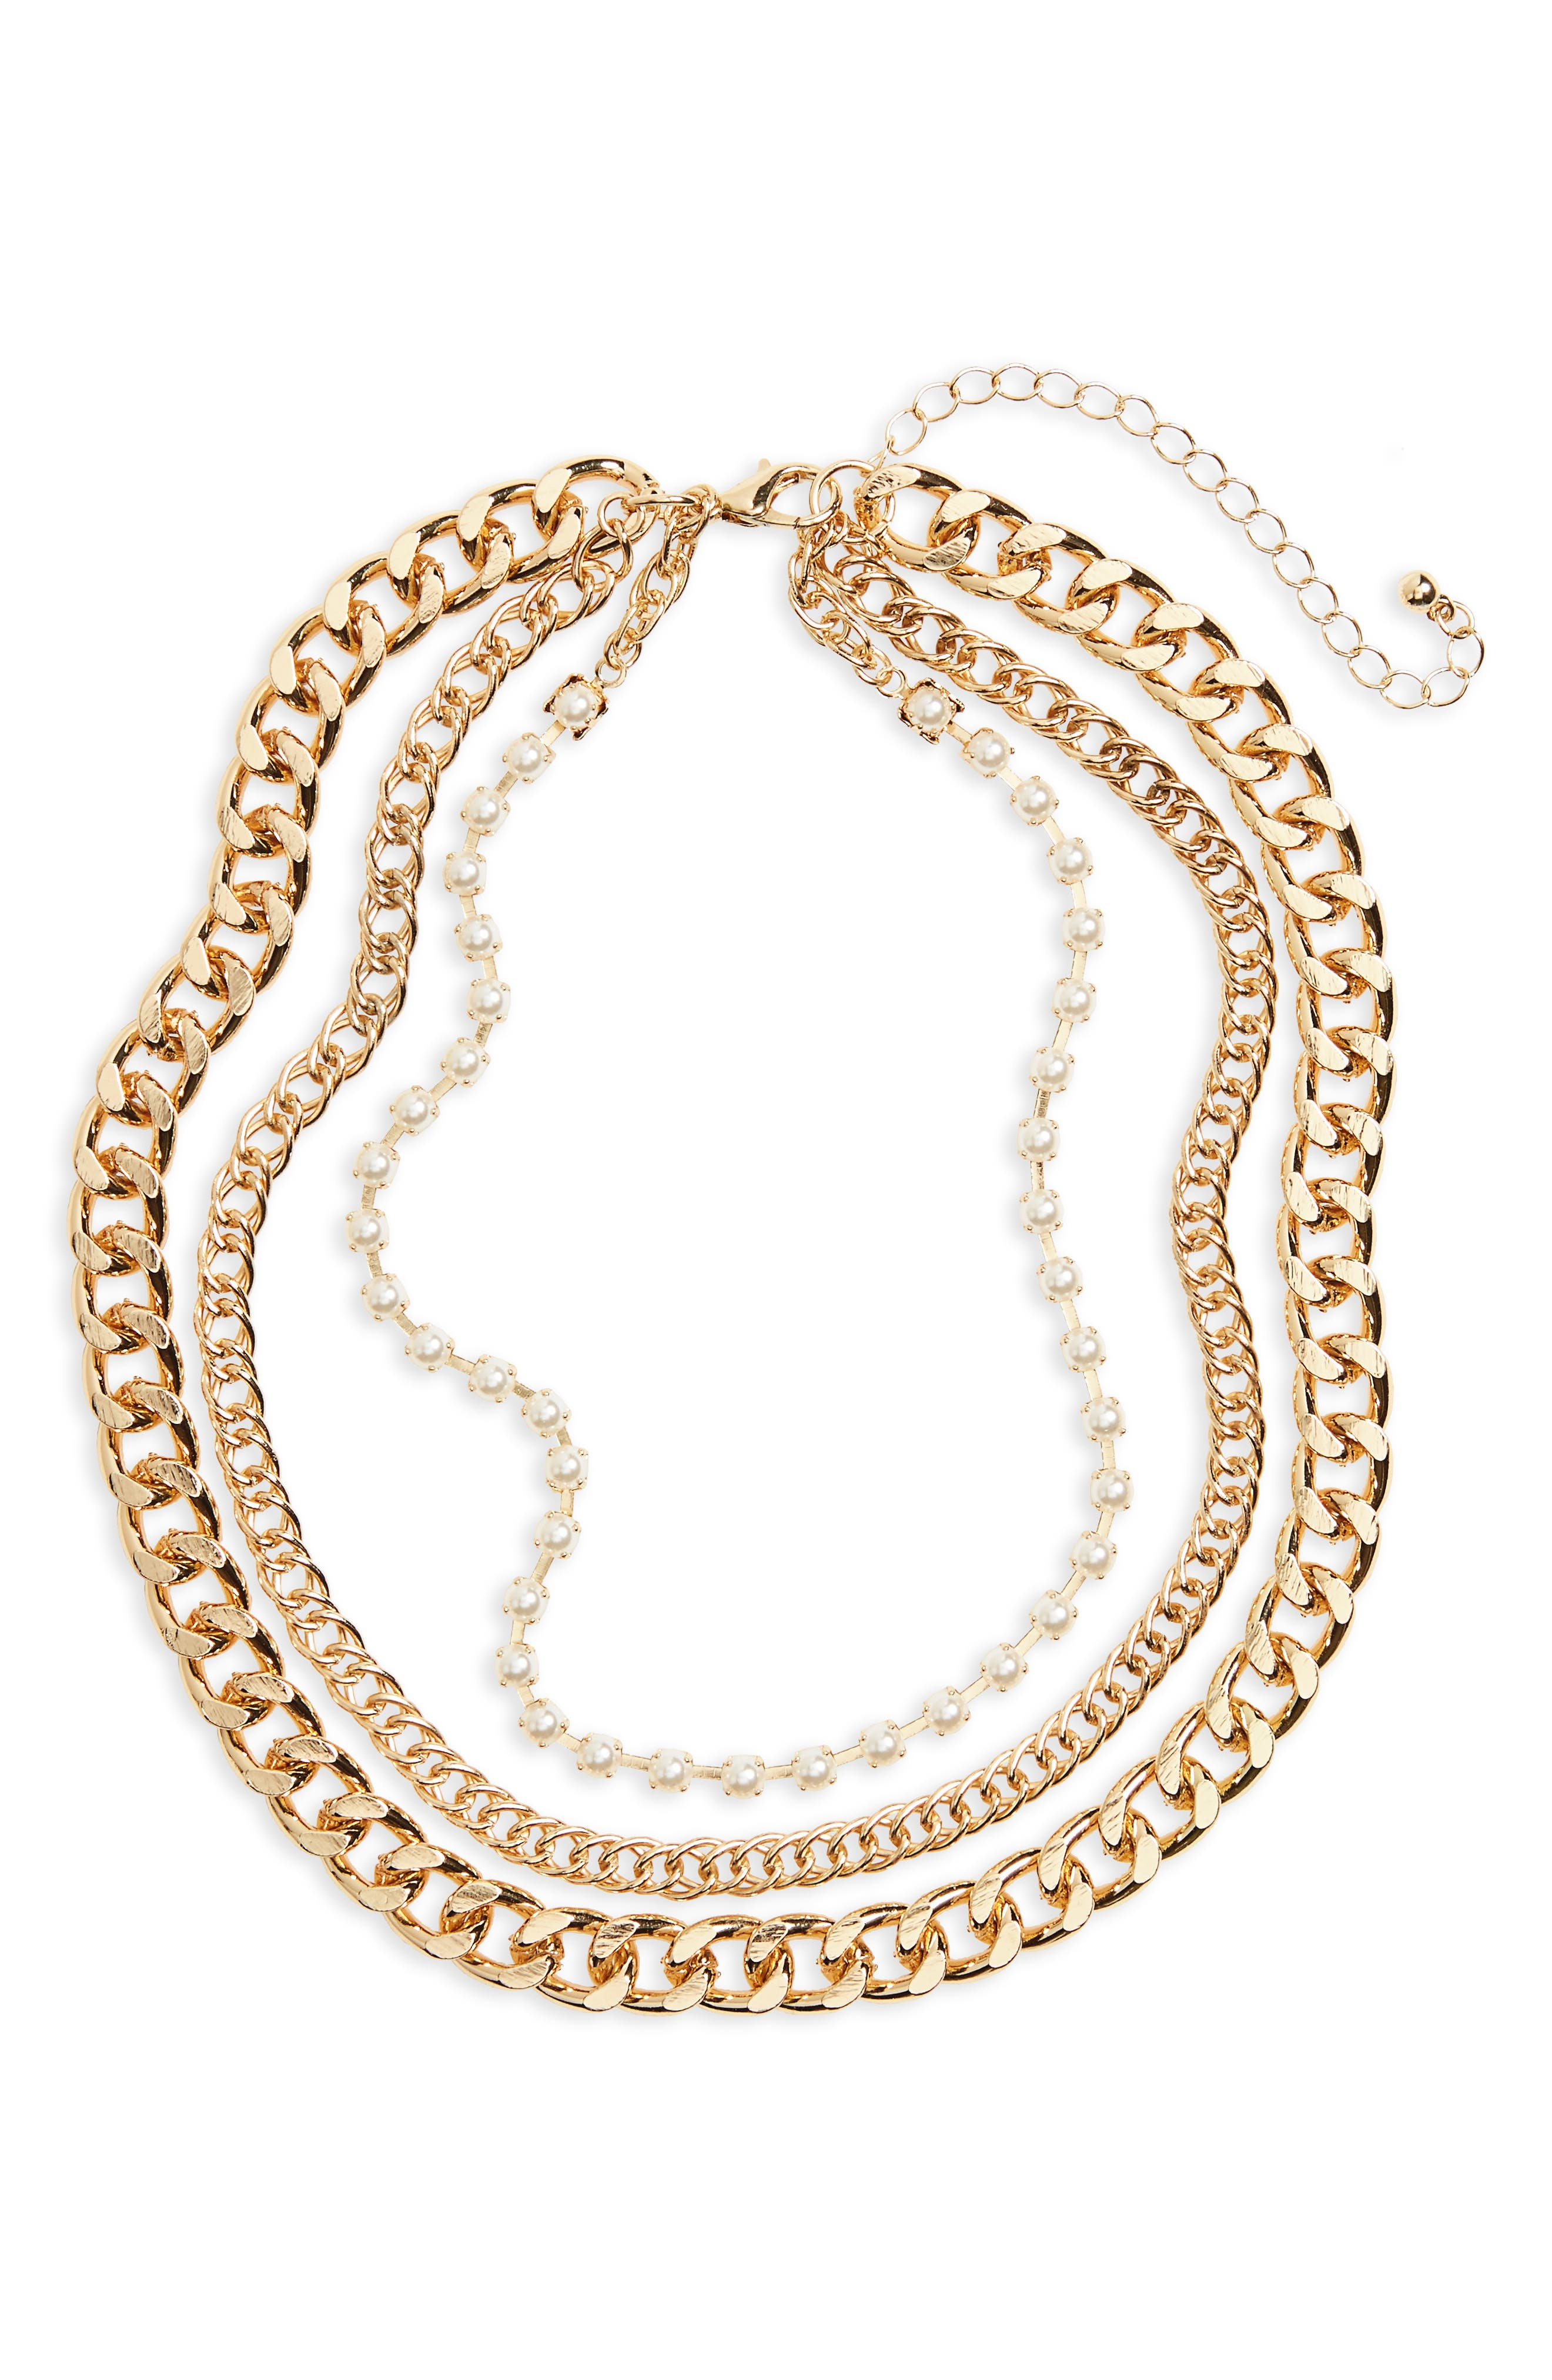 Three-Layer Chain & Faux Pearl Necklace,                             Main thumbnail 1, color,                             710